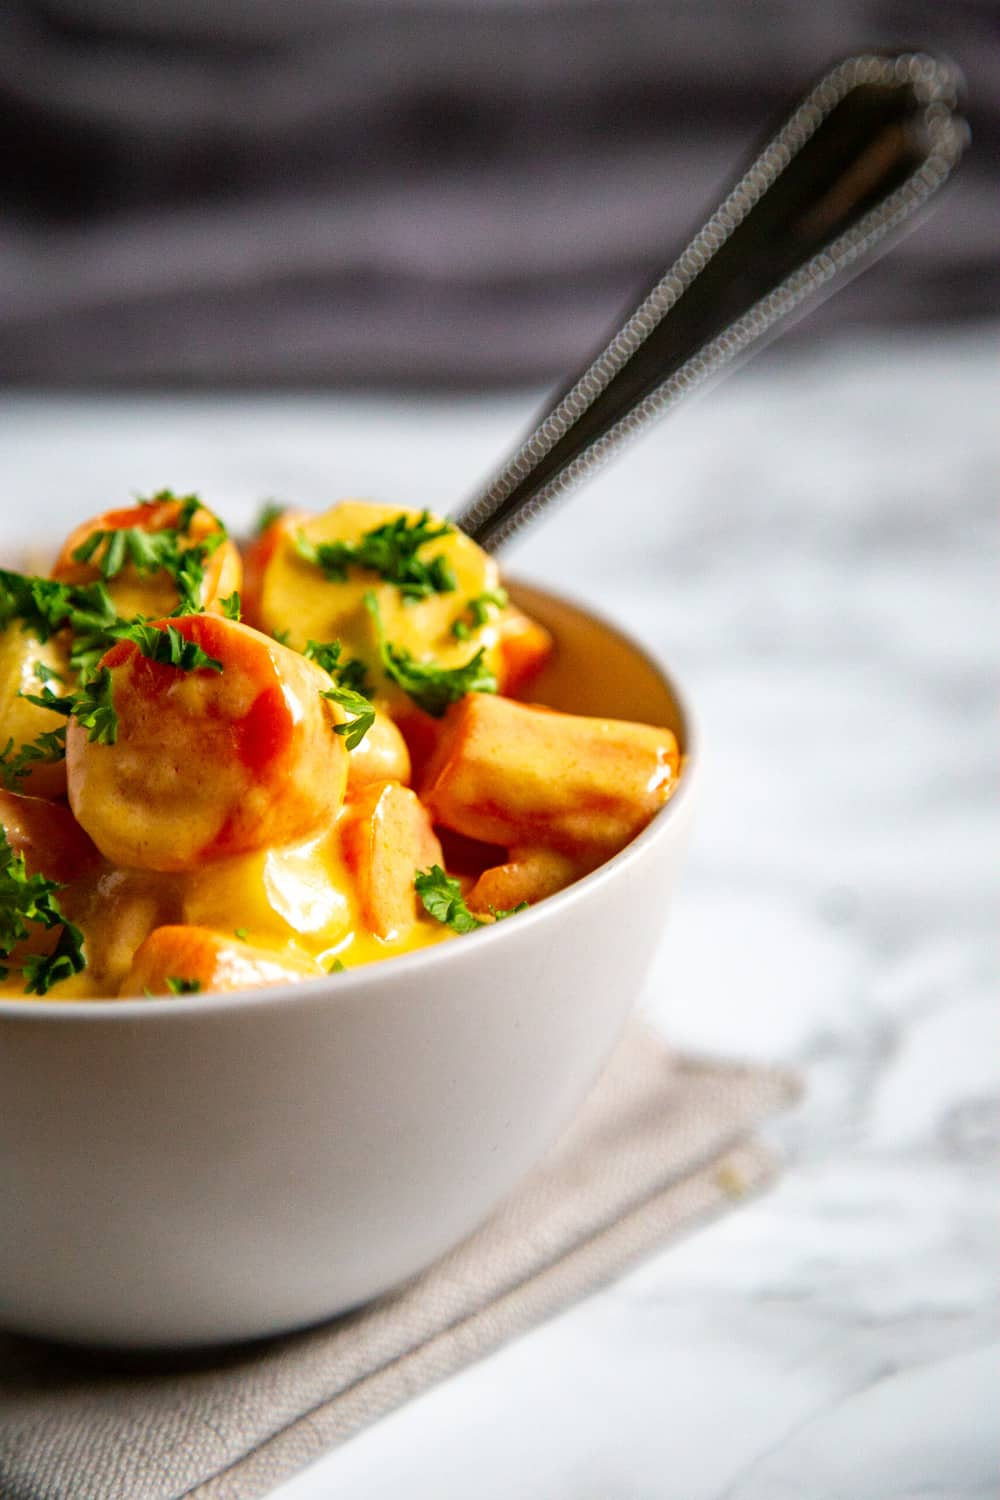 Cheesy-Carrots-and-Parsnips-1